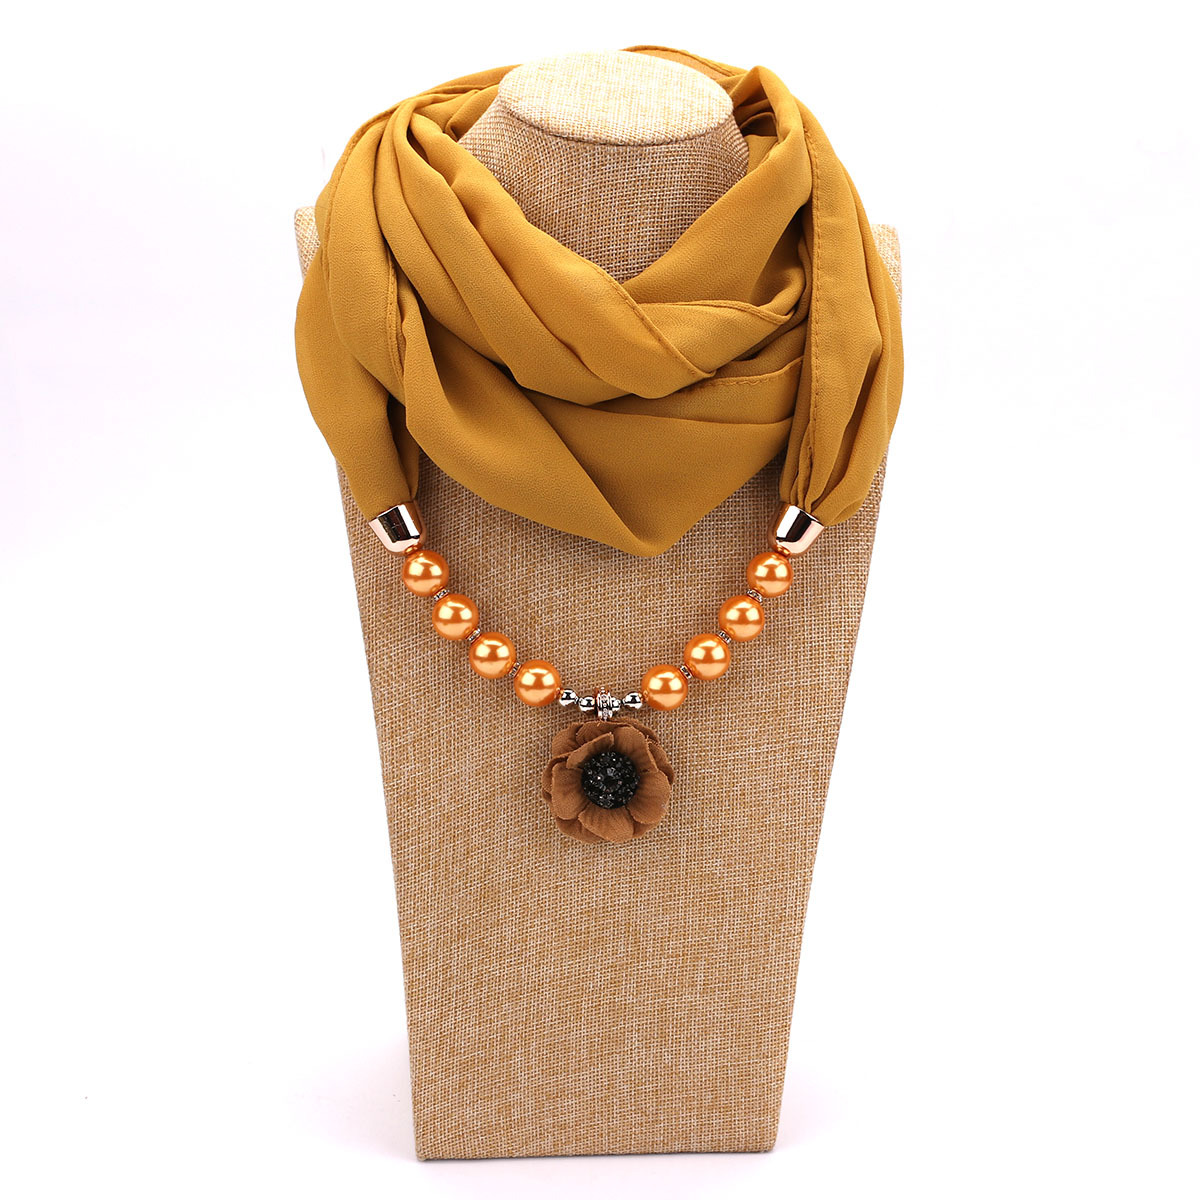 pearl chiffon jewelry necklace pendant scarf female spring autumn and winter fashion flower neck